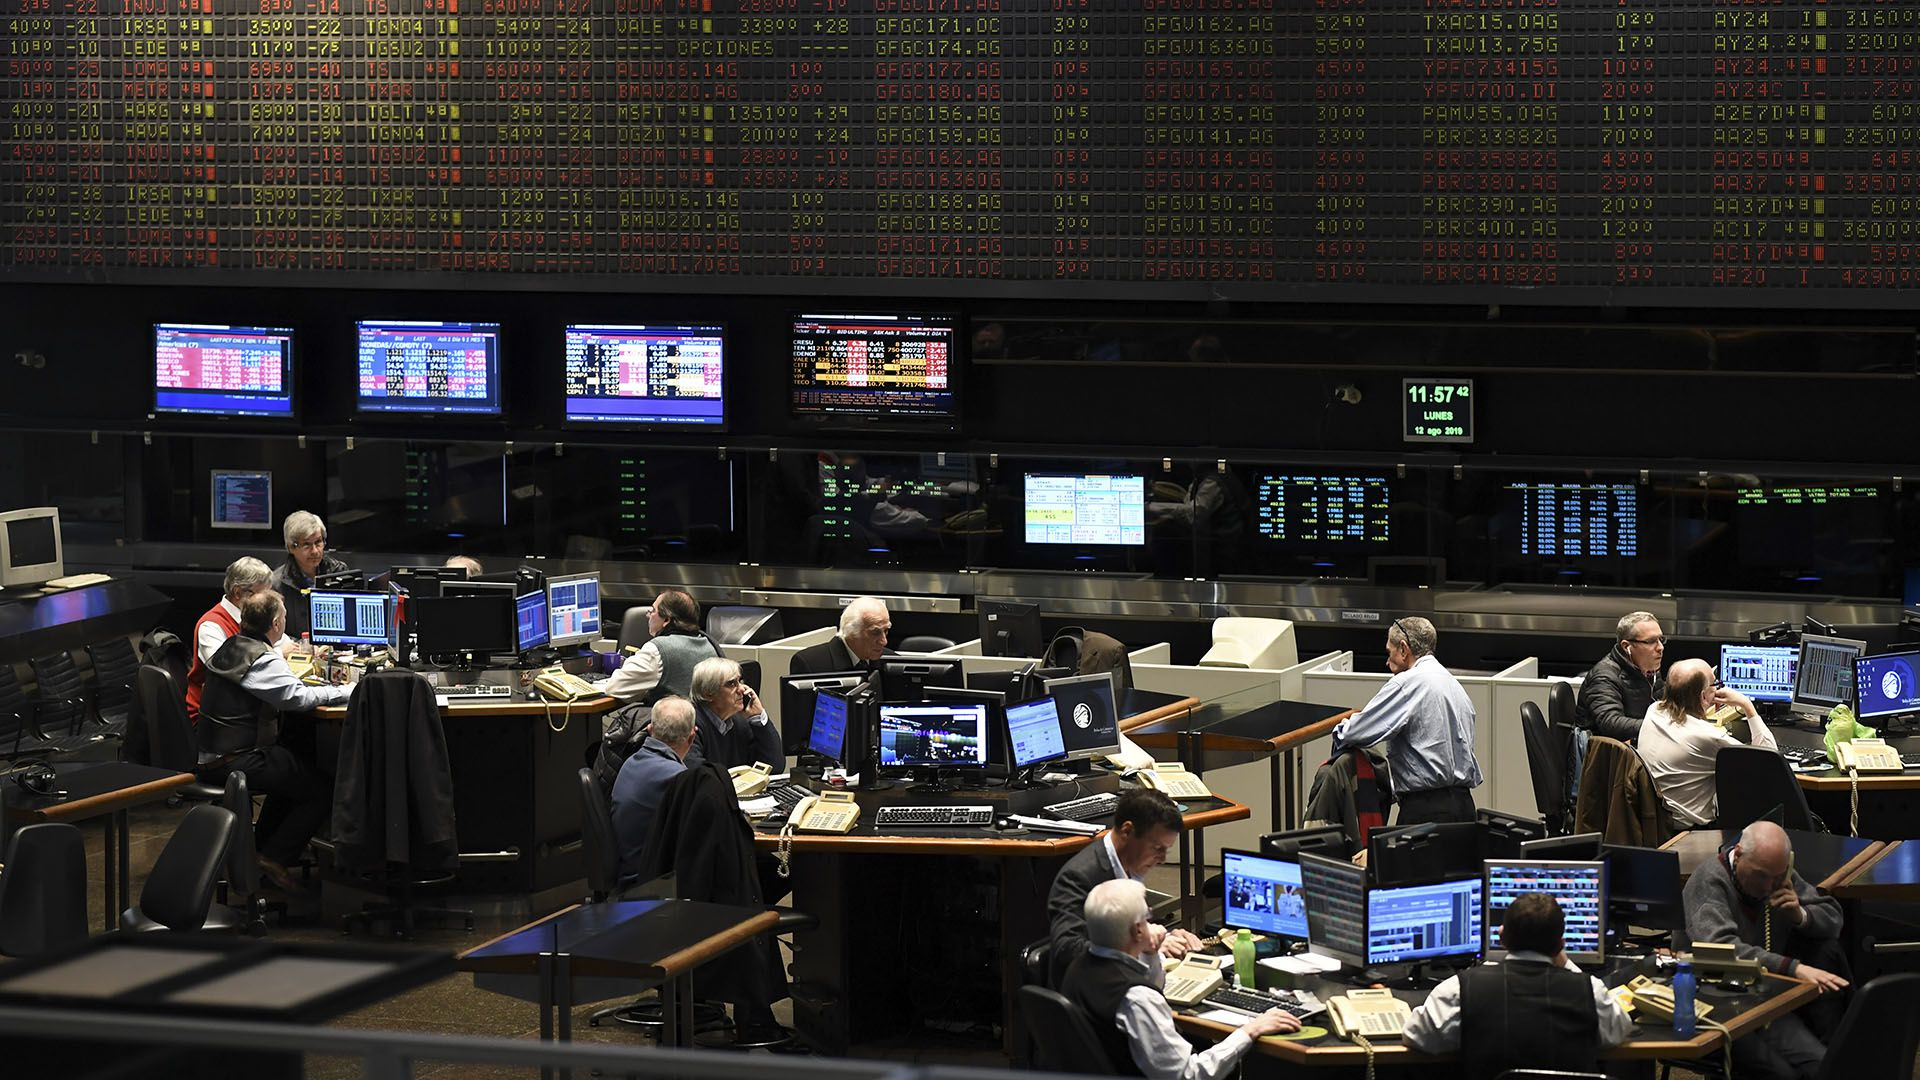 Traders are seen at the Stock Exchange in Buenos Aires on August 12, 2019. - The Buenos Aires stock exchange plunged 10 percent at the start of operations on Monday following liberal President Mauricio Macri's crushing defeat in party primaries over the weekend. Markets reacted with jitters to Macri's massive re-election blow as the peso also went into free fall against the dollar, dropping from 46.55 on Friday to 60. (Photo by RONALDO SCHEMIDT / AFP)